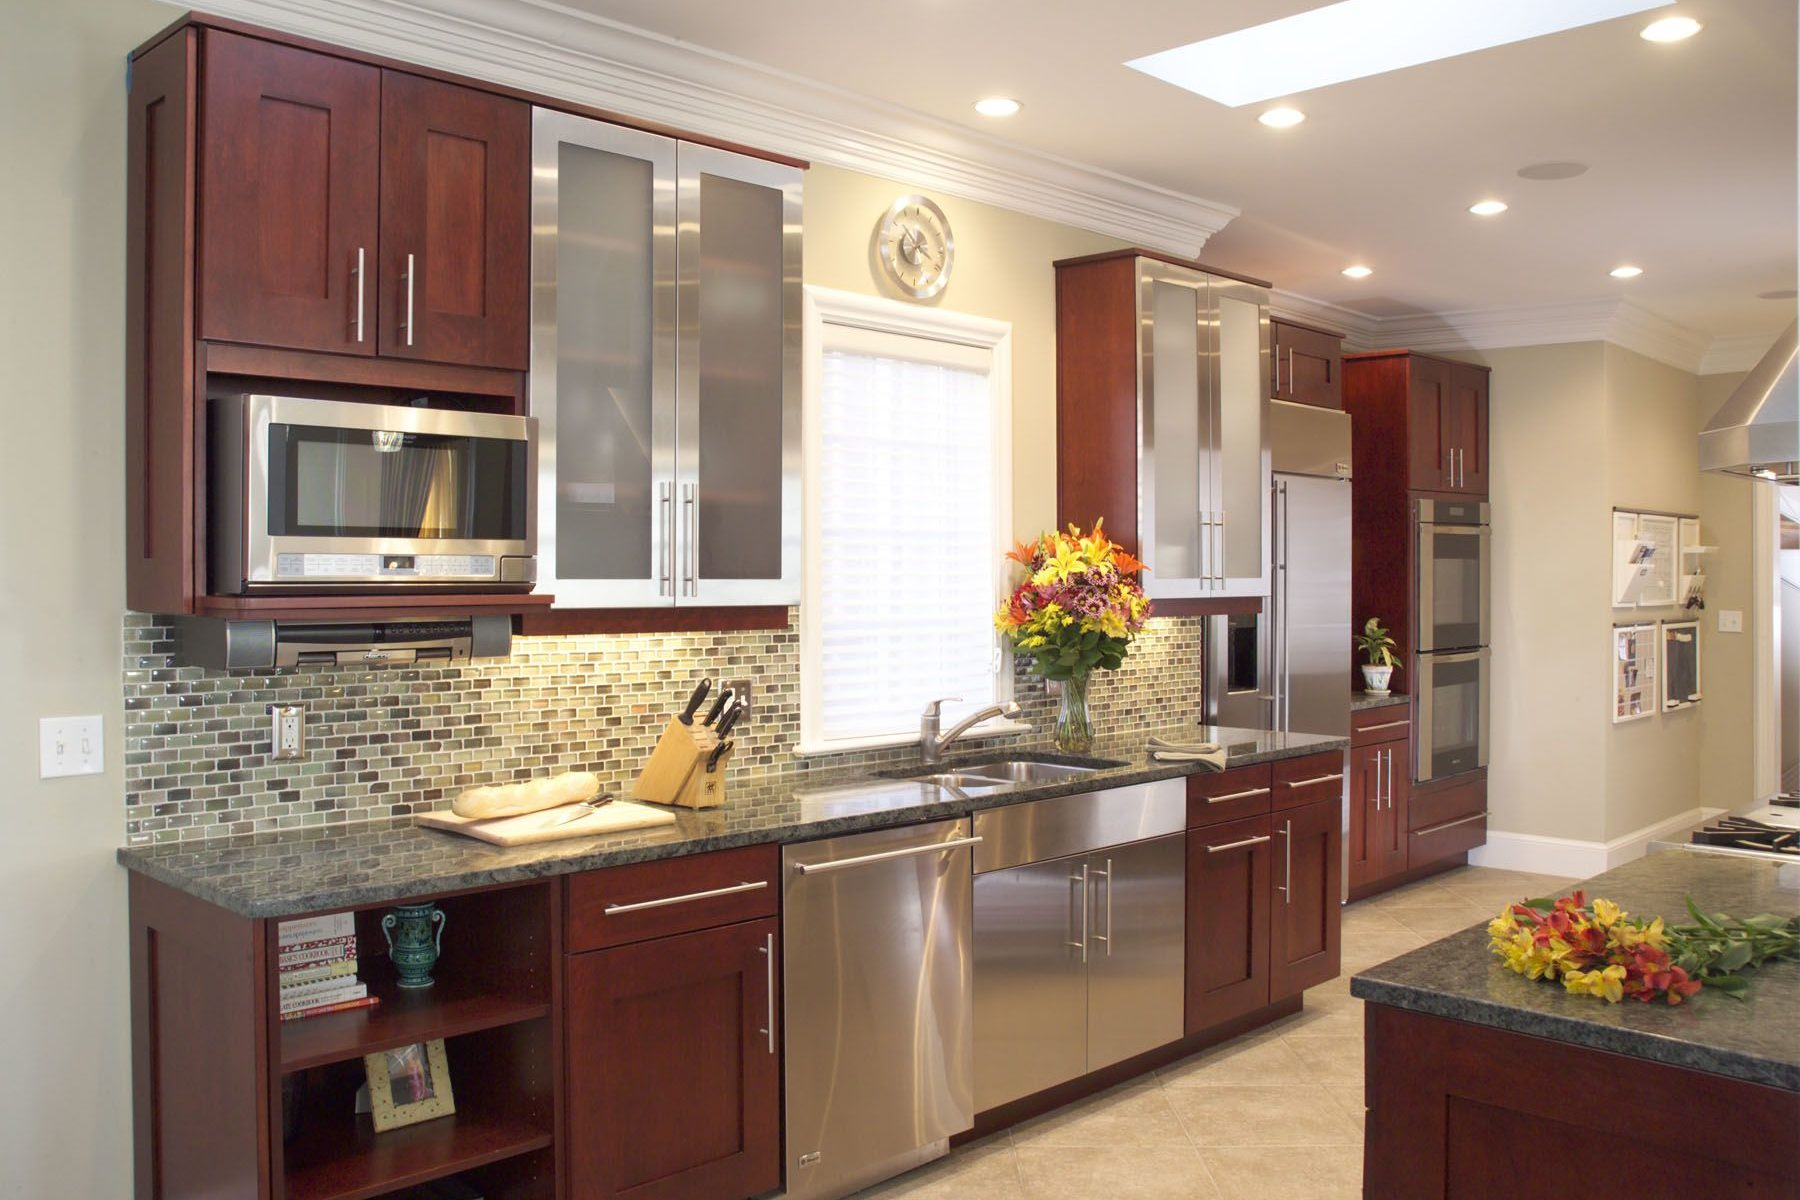 Advantages of Relying on Experts for Constructing New Kitchens